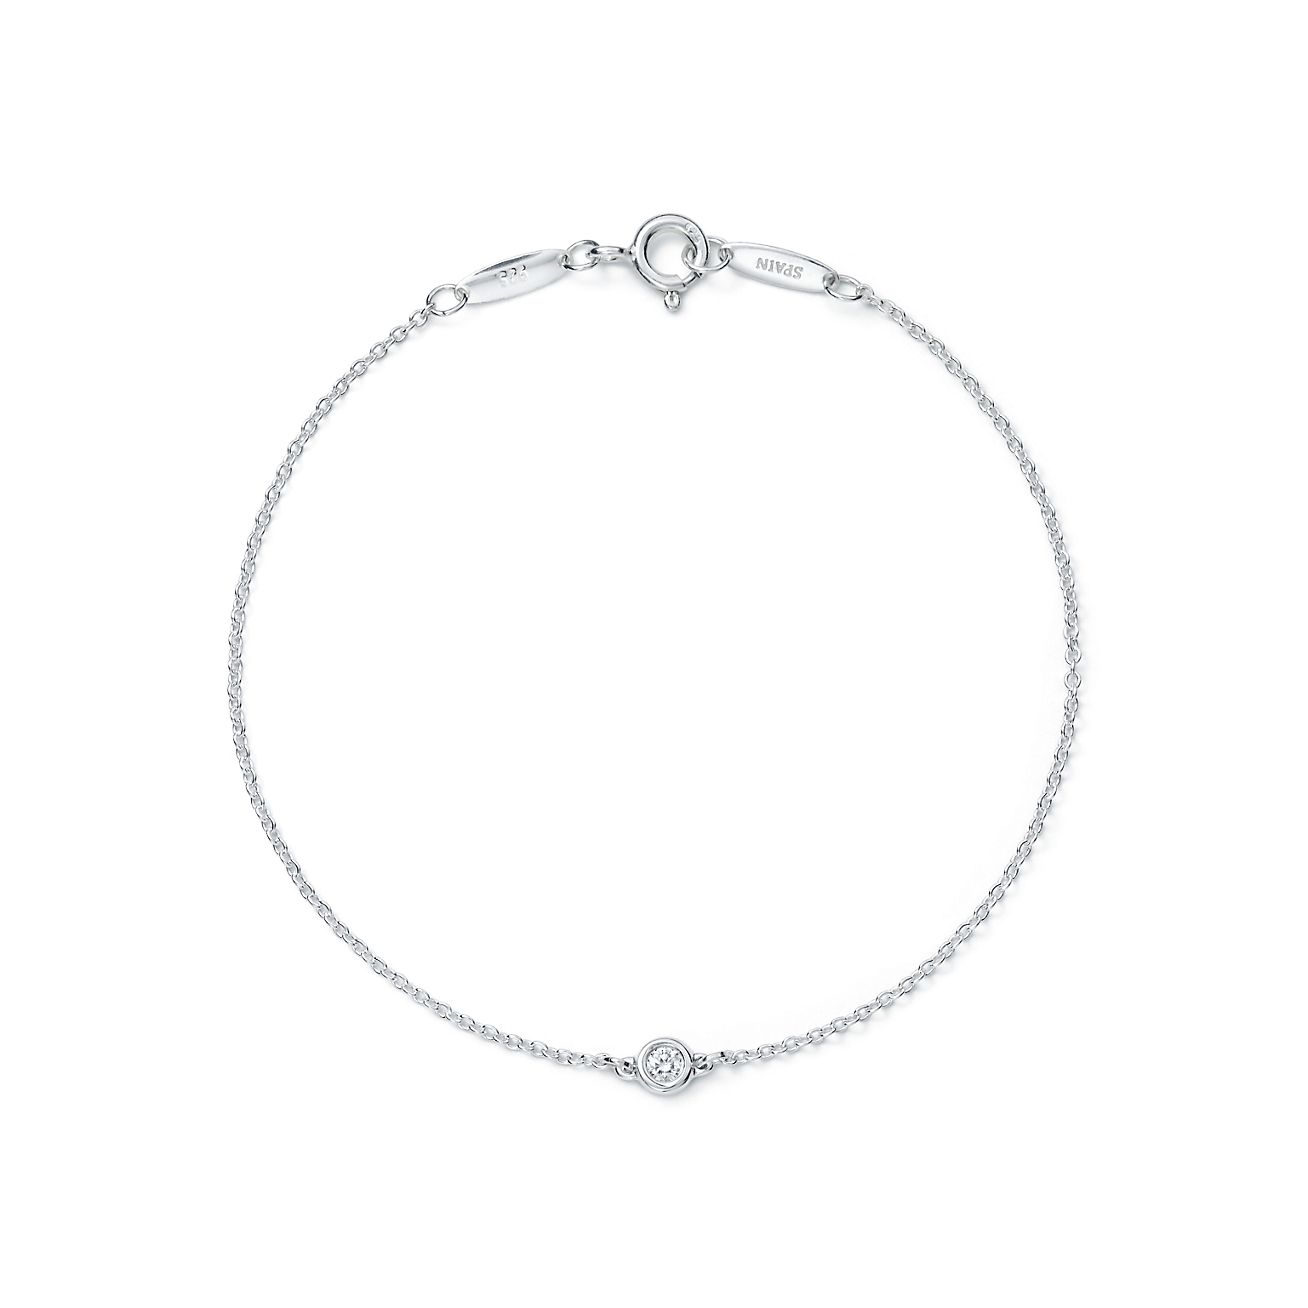 gold diamonds the single bb my white heart in diamond jewels of story silver bambino first aristides bracelet fine blog